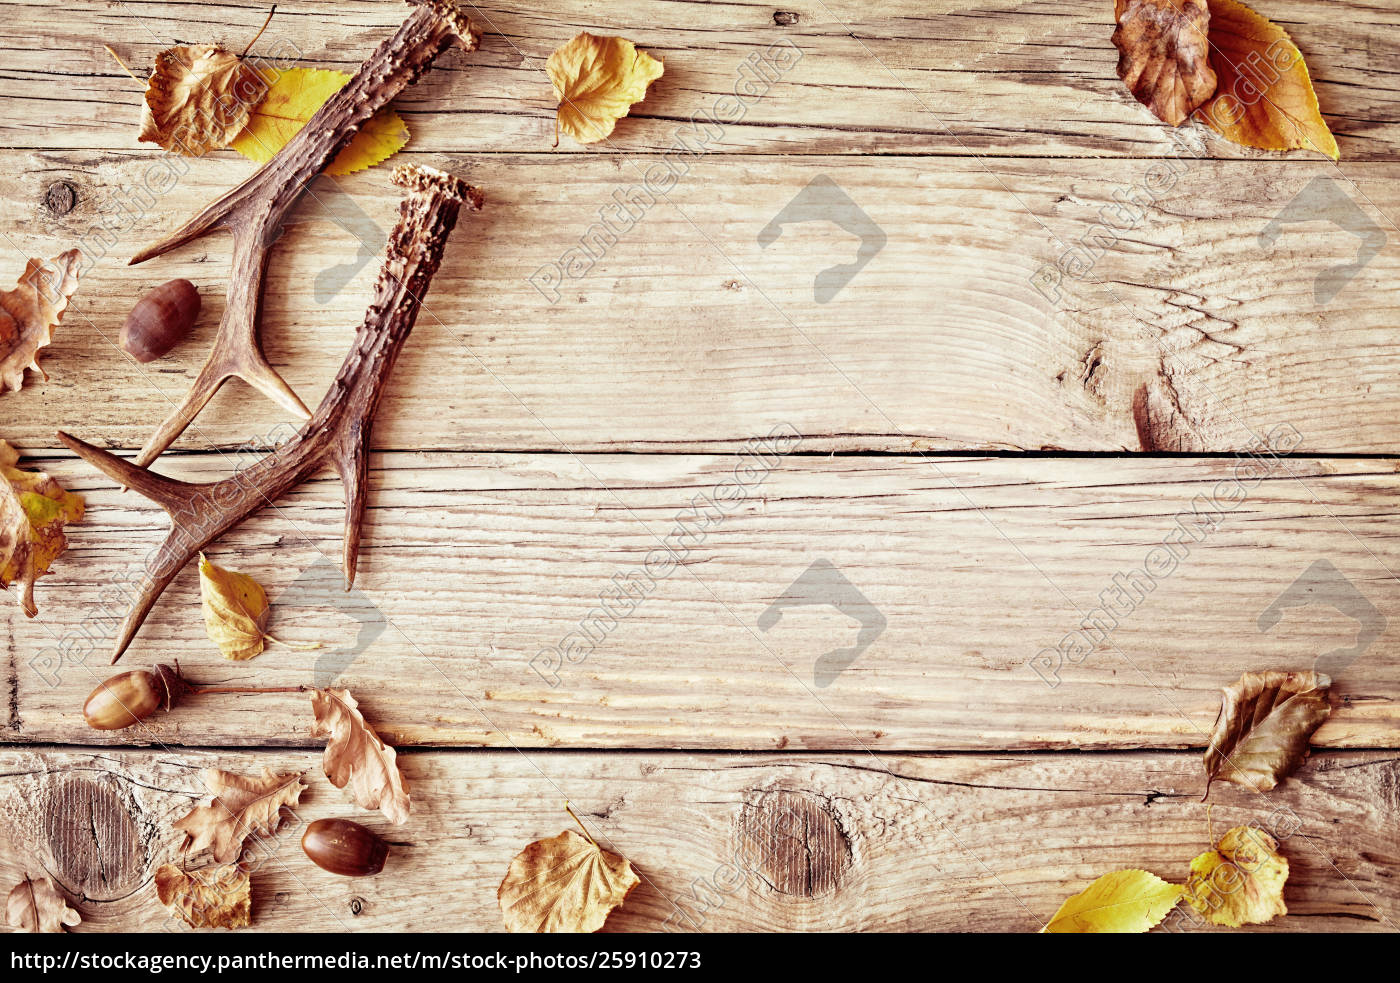 Old Rustic Wood Background With Antlers Stock Photo 25910273 Panthermedia Stock Agency Find the best free stock images about rustic wood background. stock photo 25910273 old rustic wood background with